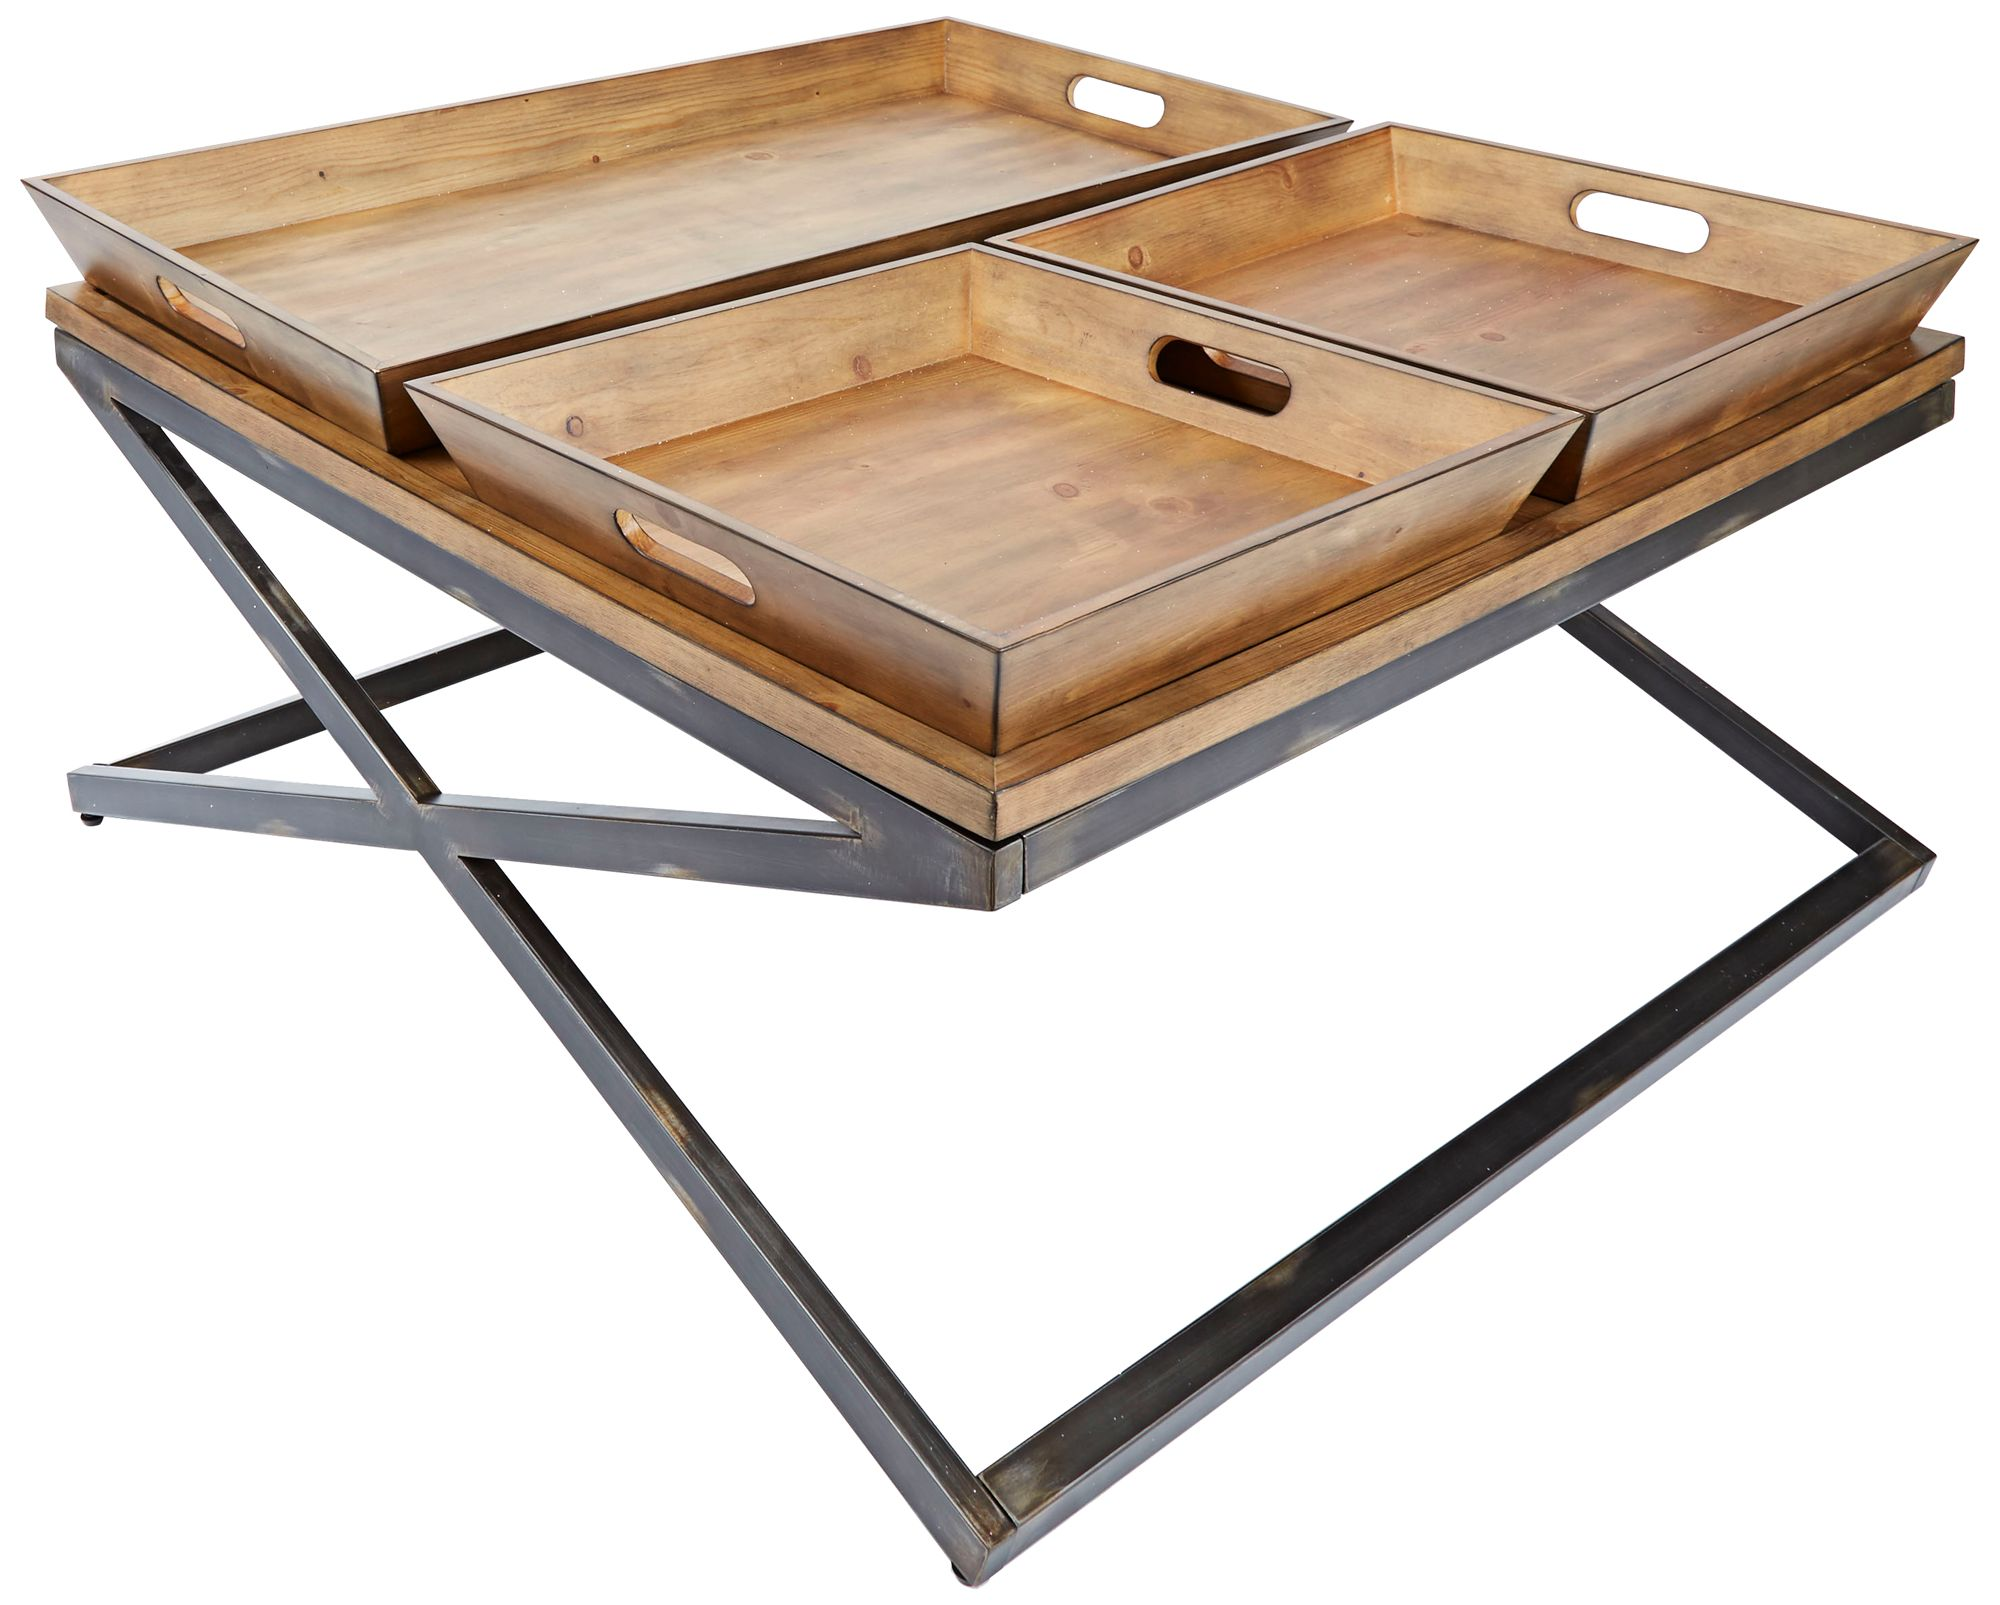 Calhoun Industrial Wood Top And Steel Square Coffee Table   #15K07 | Lamps  Plus